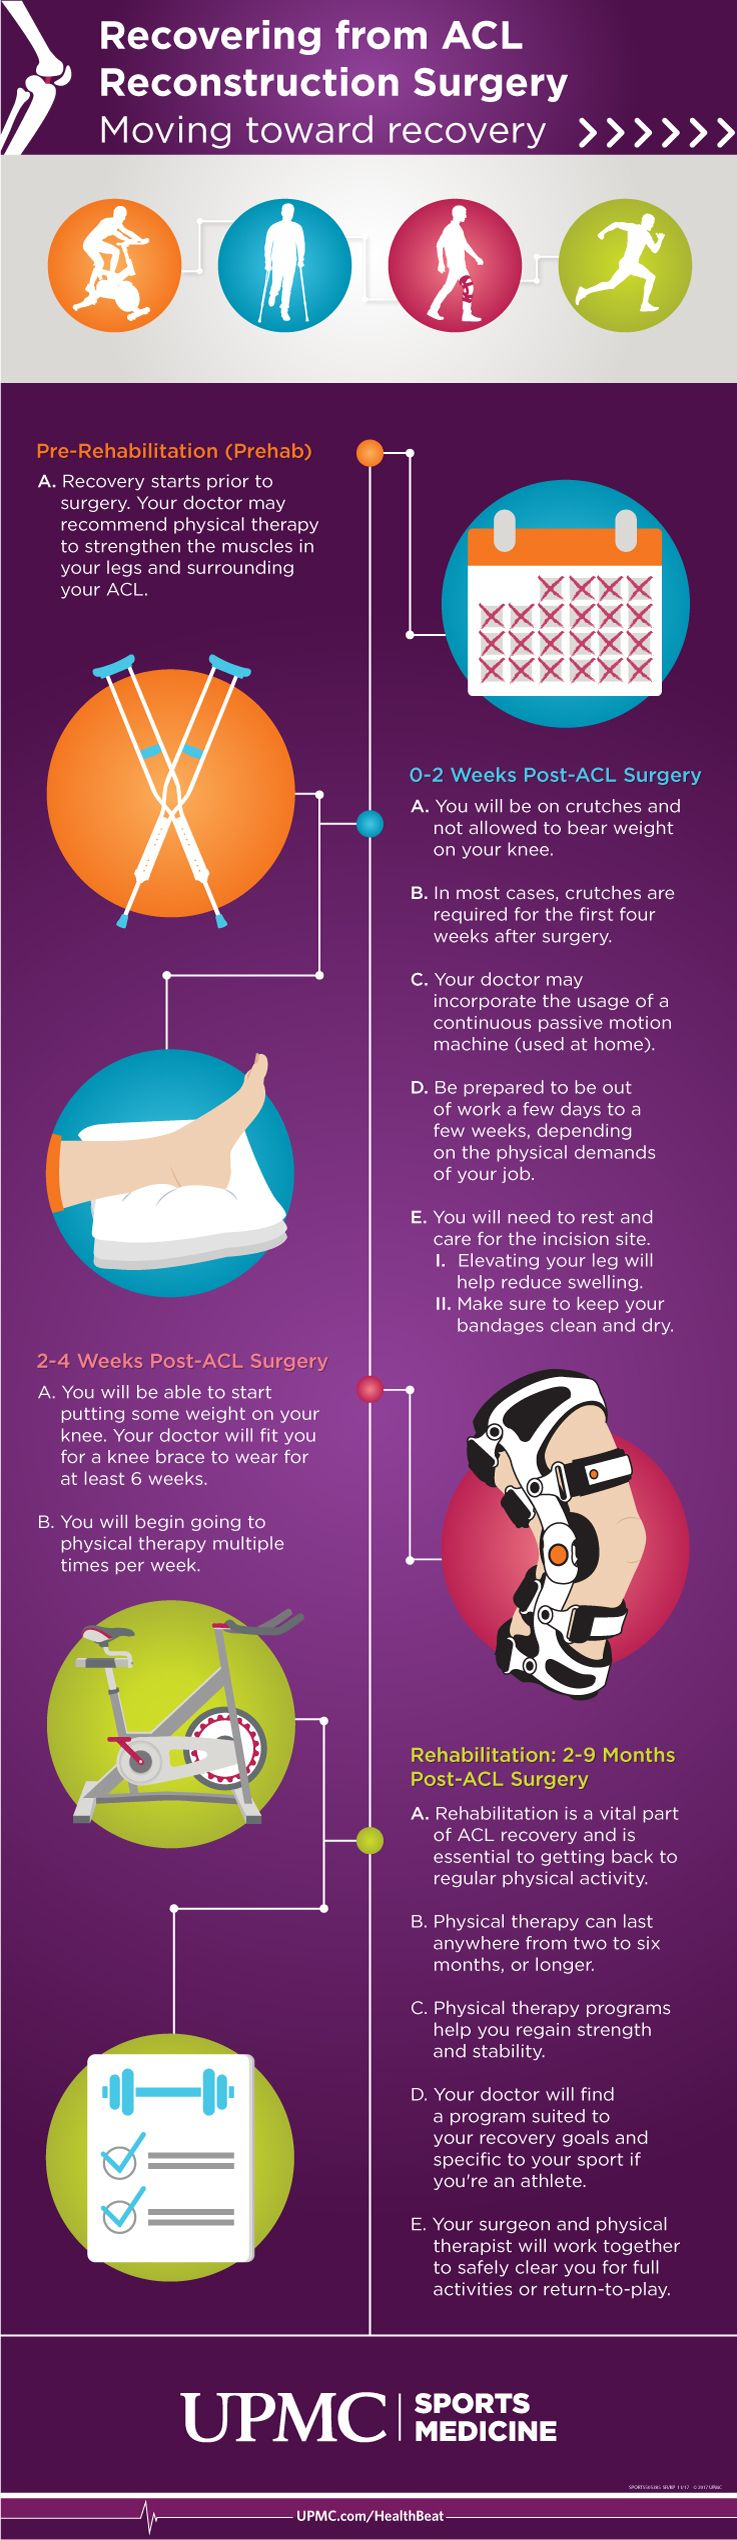 Acl surgery recovery timeline acl surgery acl recovery